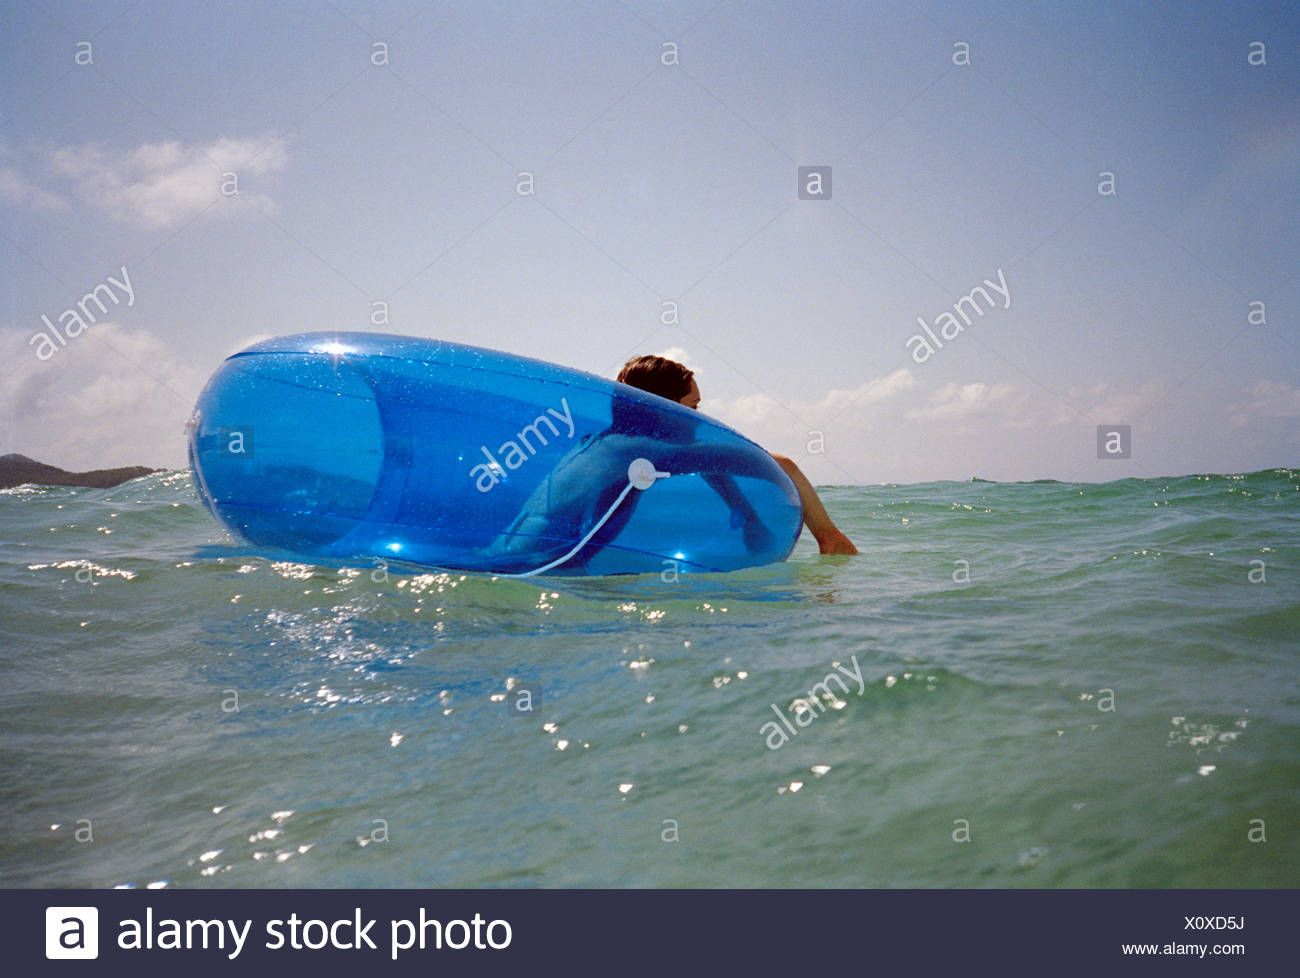 A woman floating on an inner tube in the sea - Stock Image